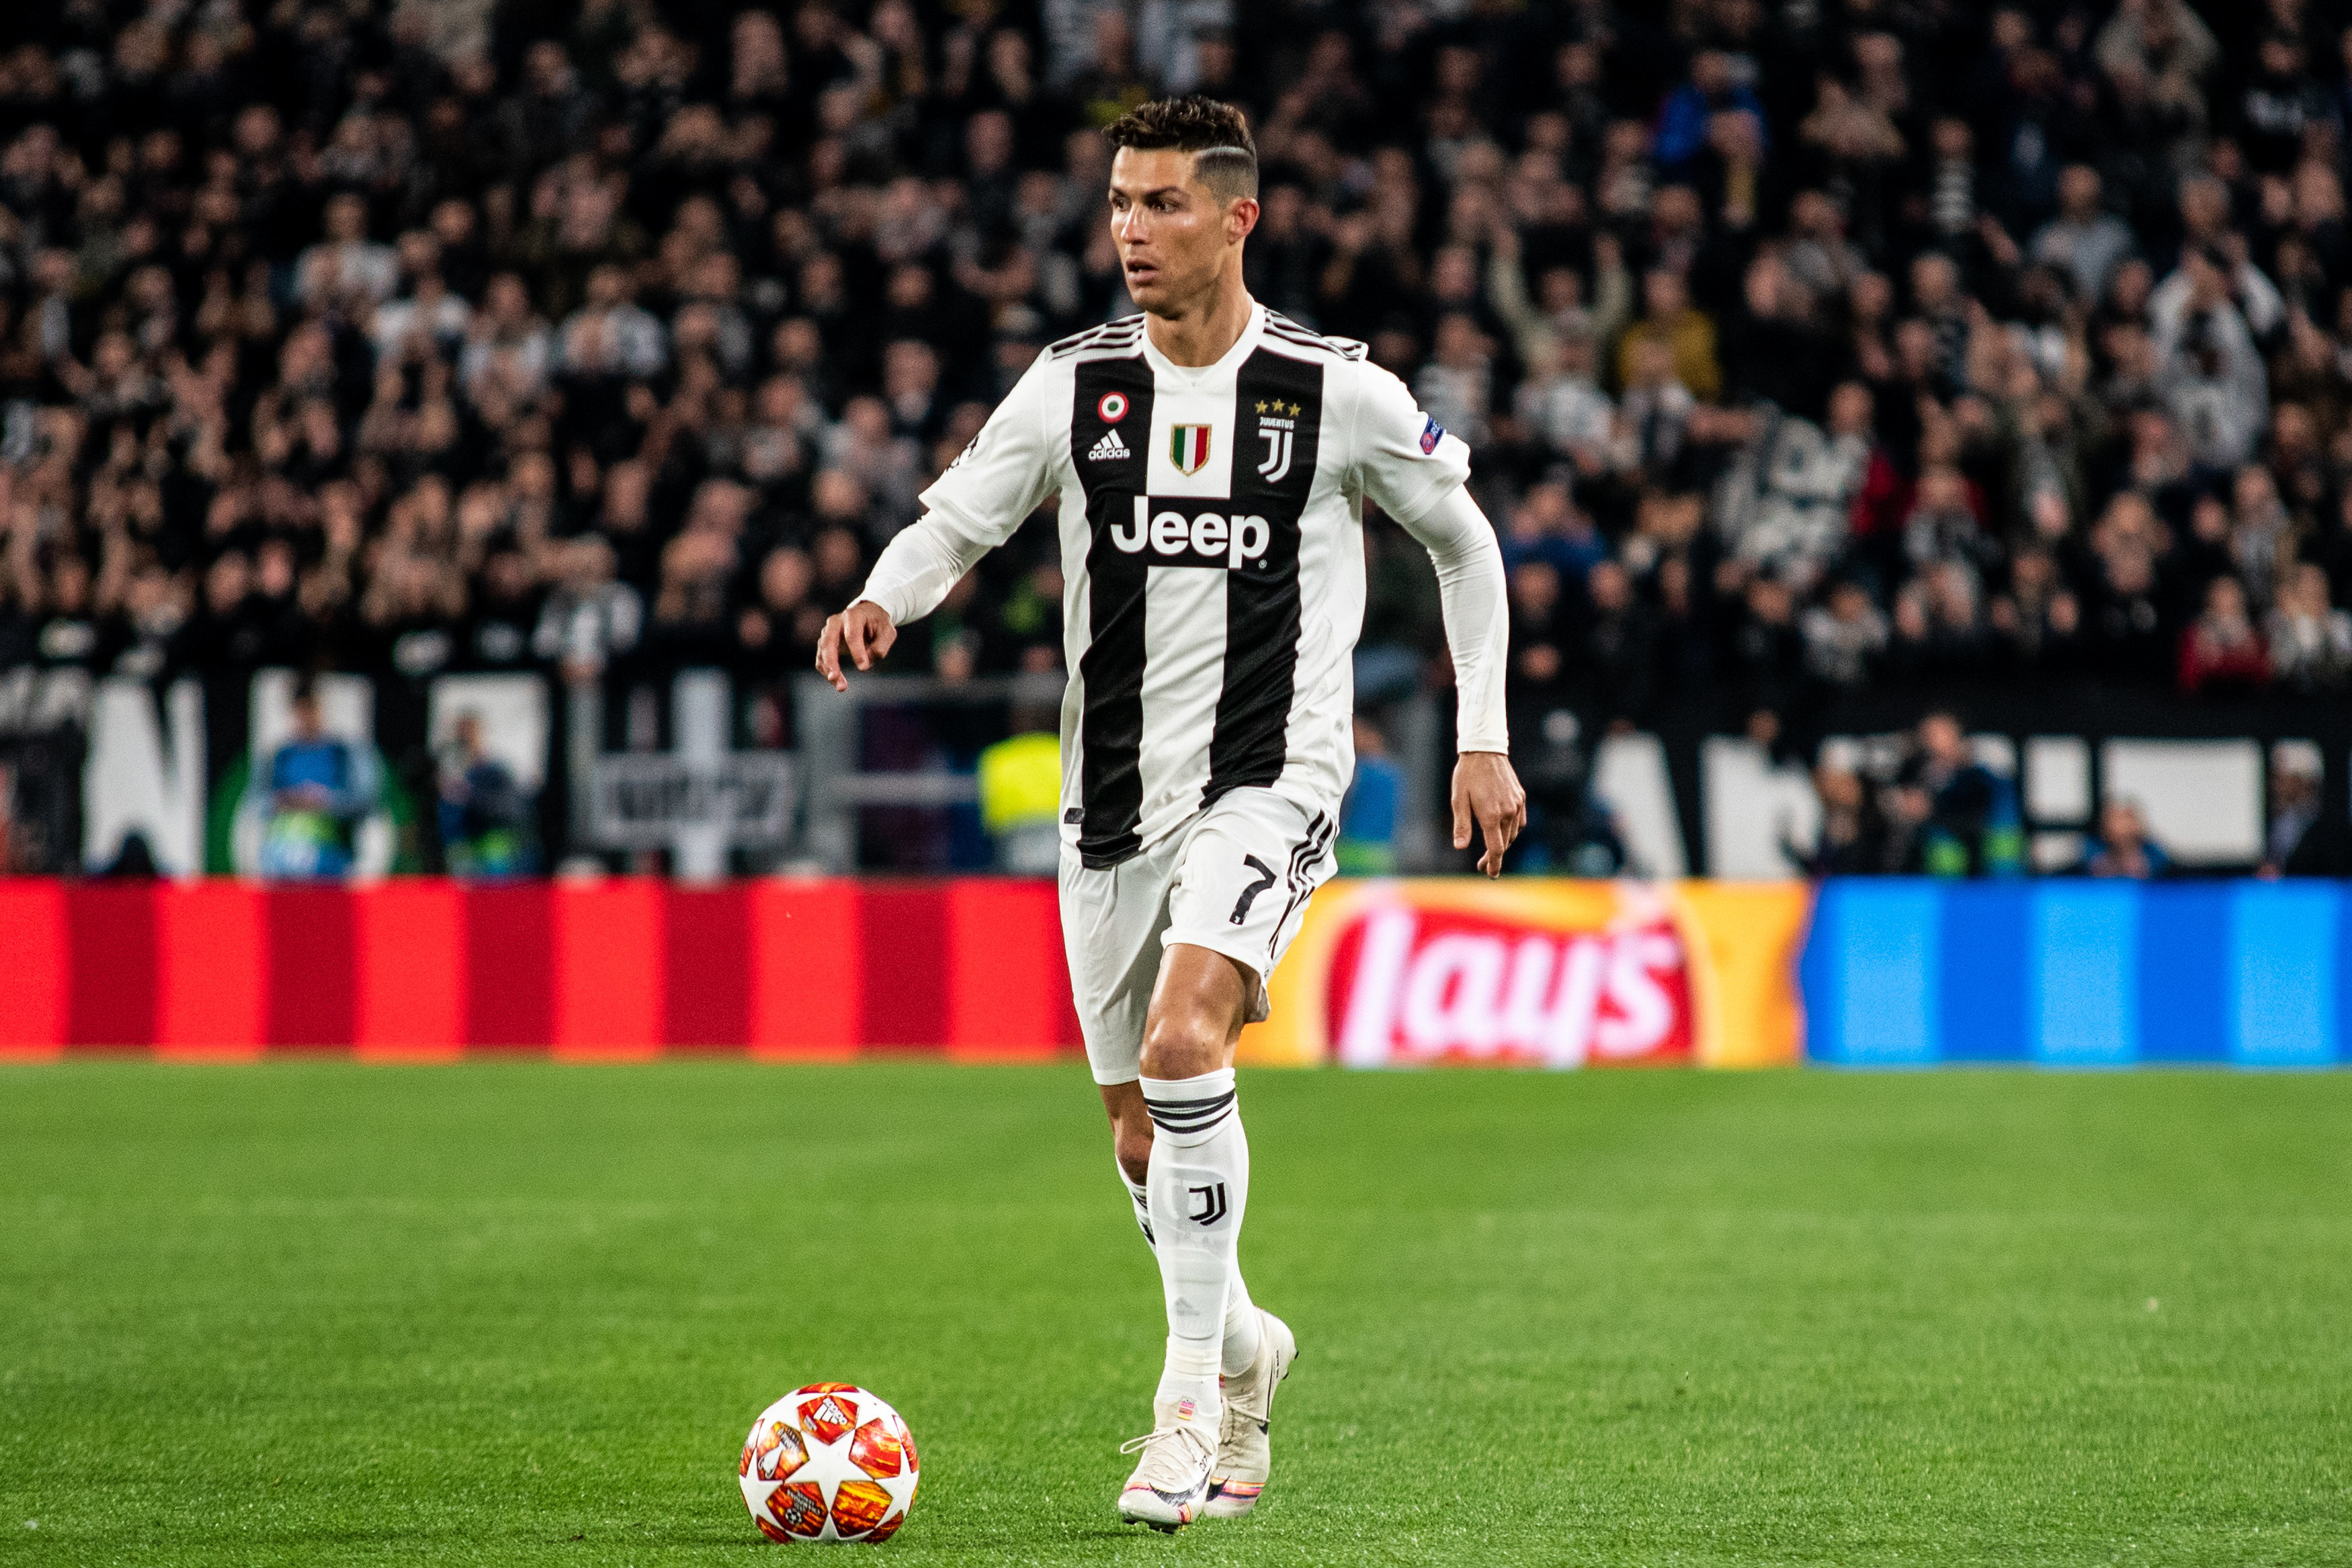 Cristiano Ronaldo extends invitation to wonderkid to join him at Juventus